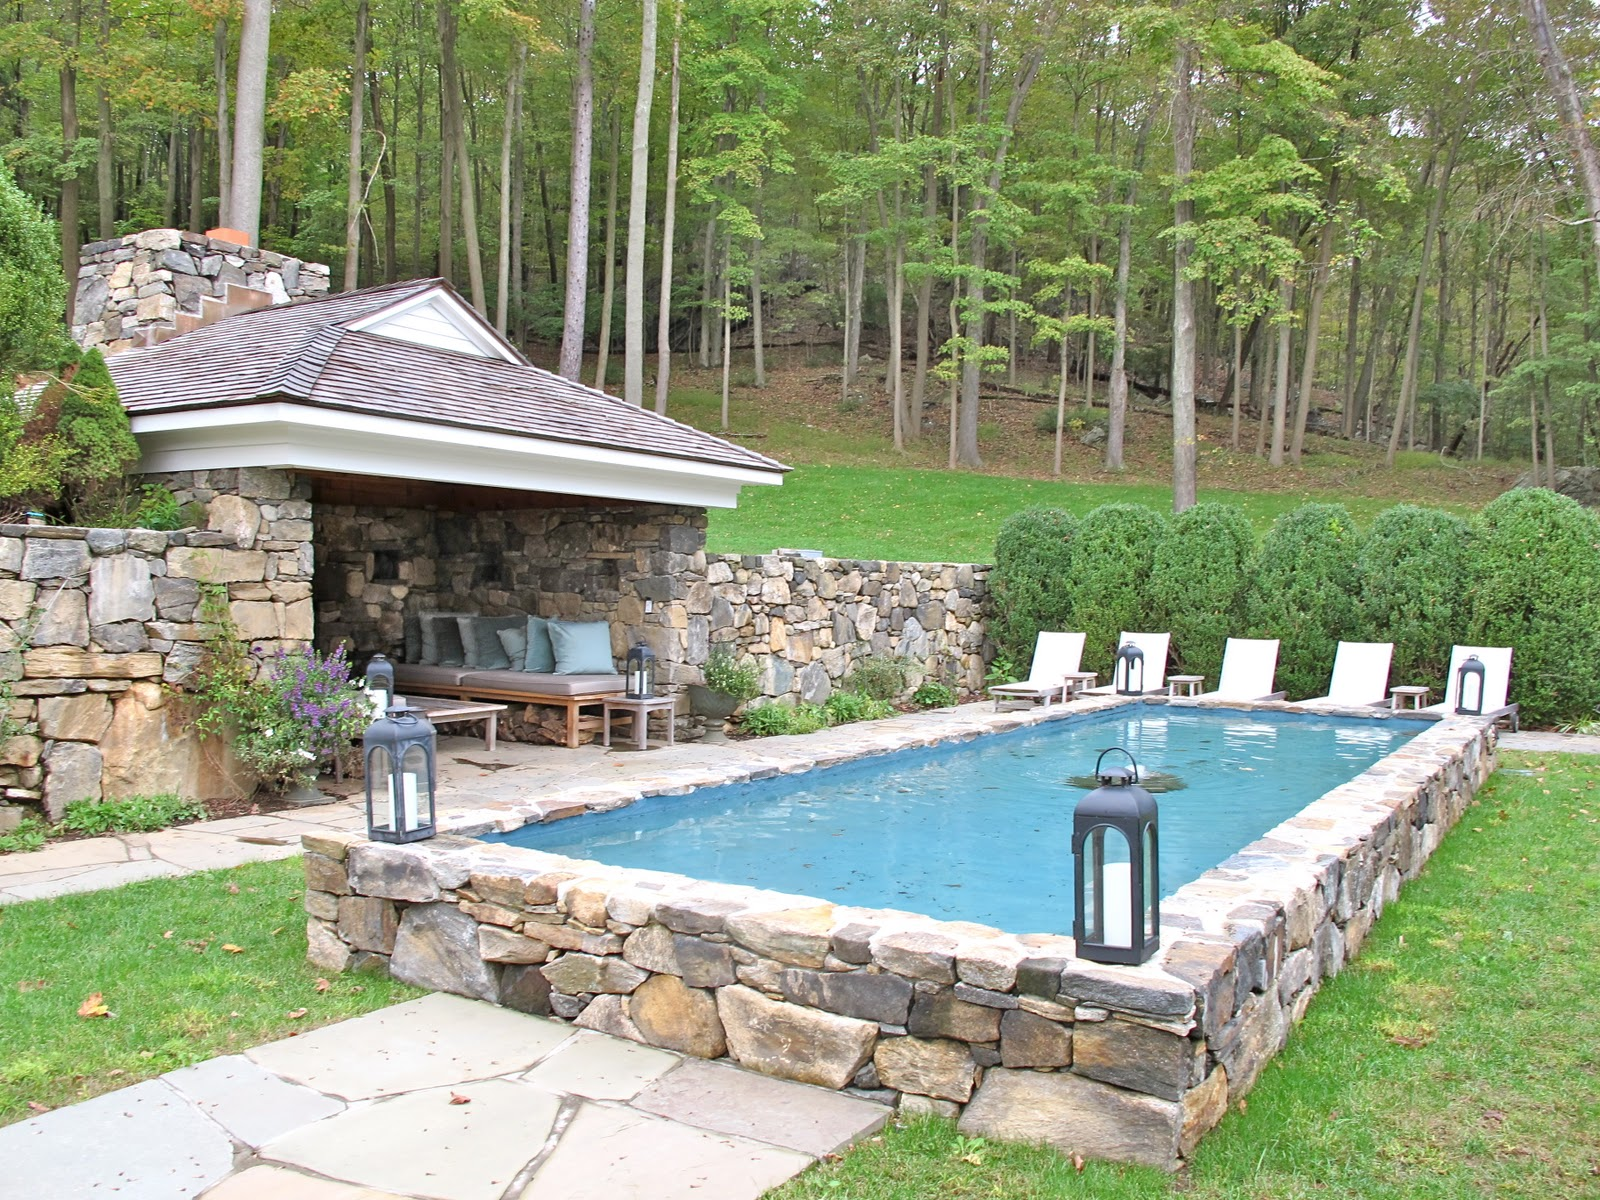 Pool ideas on pinterest semi inground pools in ground for Semi inground pool